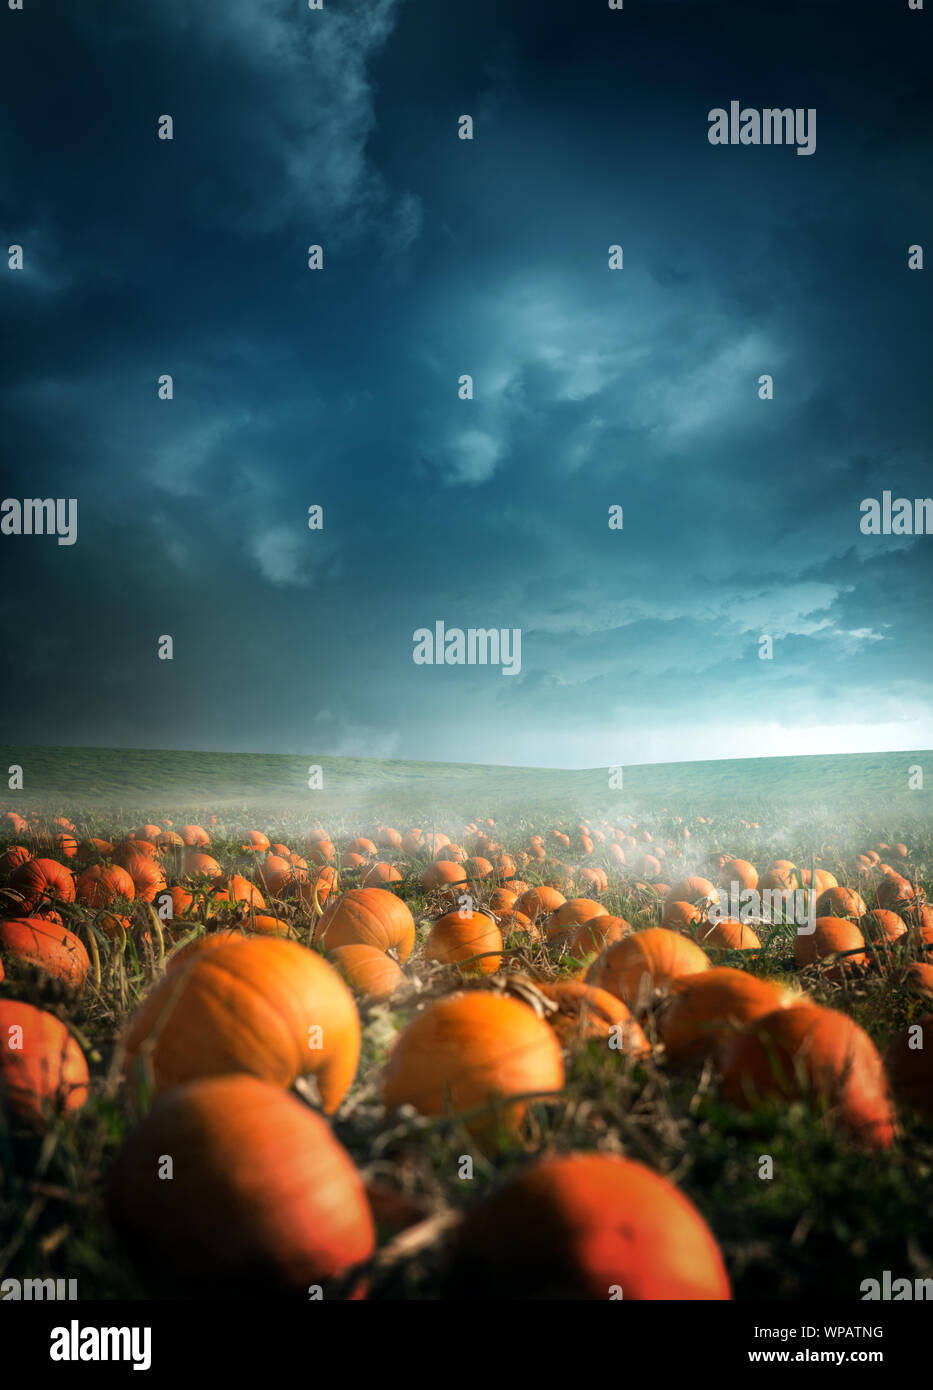 A spooky and misty halloween pumpkin field landscape